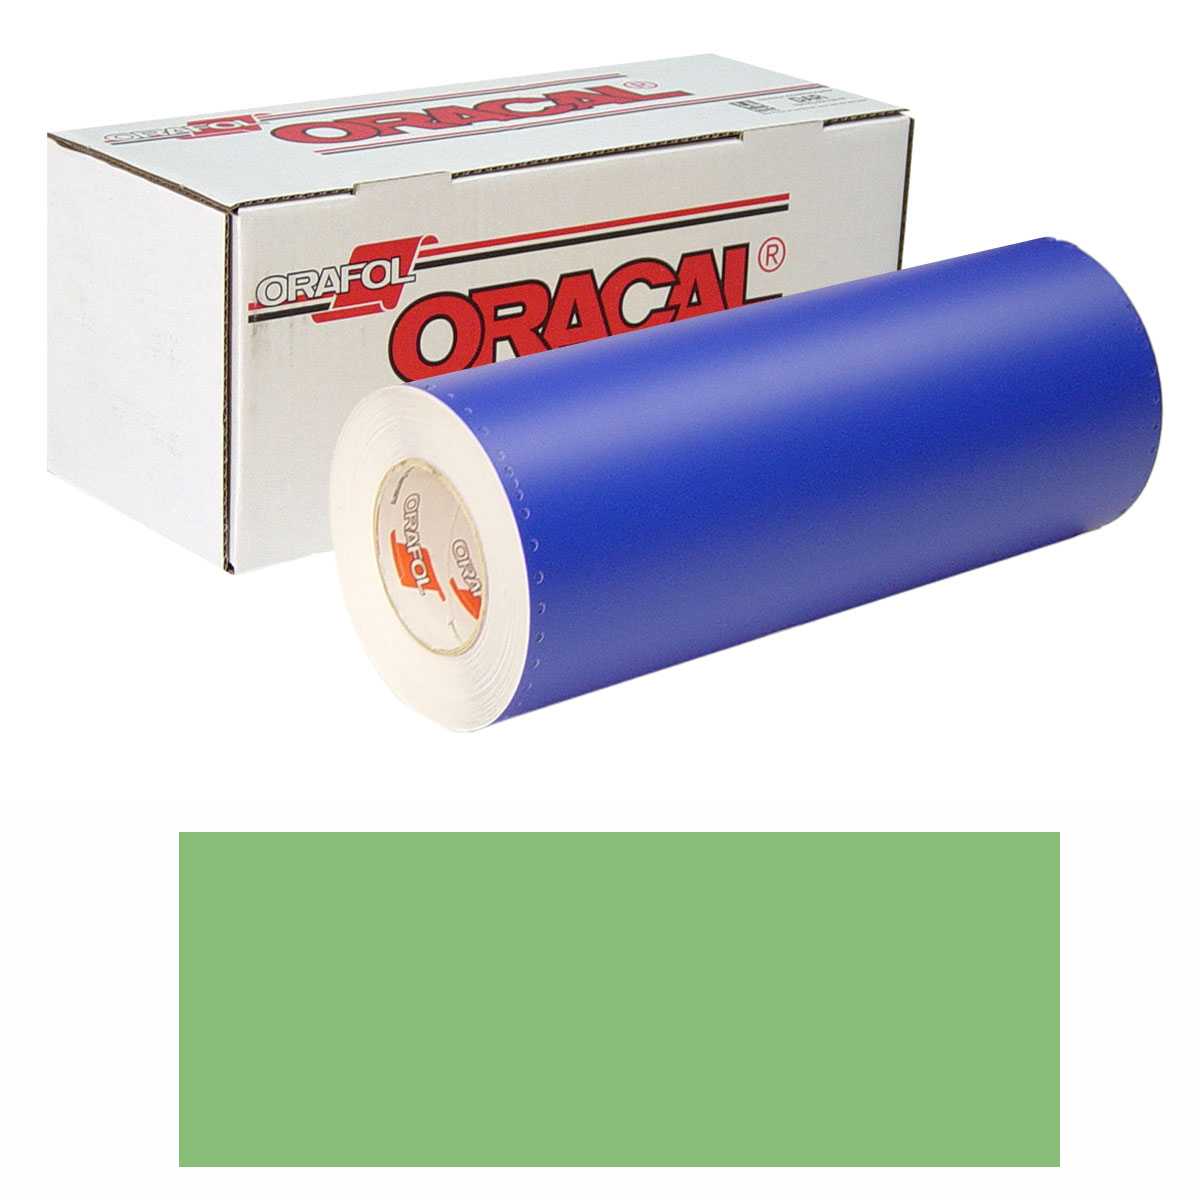 ORACAL 8300 Unp 48In X 50Yd 063 Lime-Tree Grn